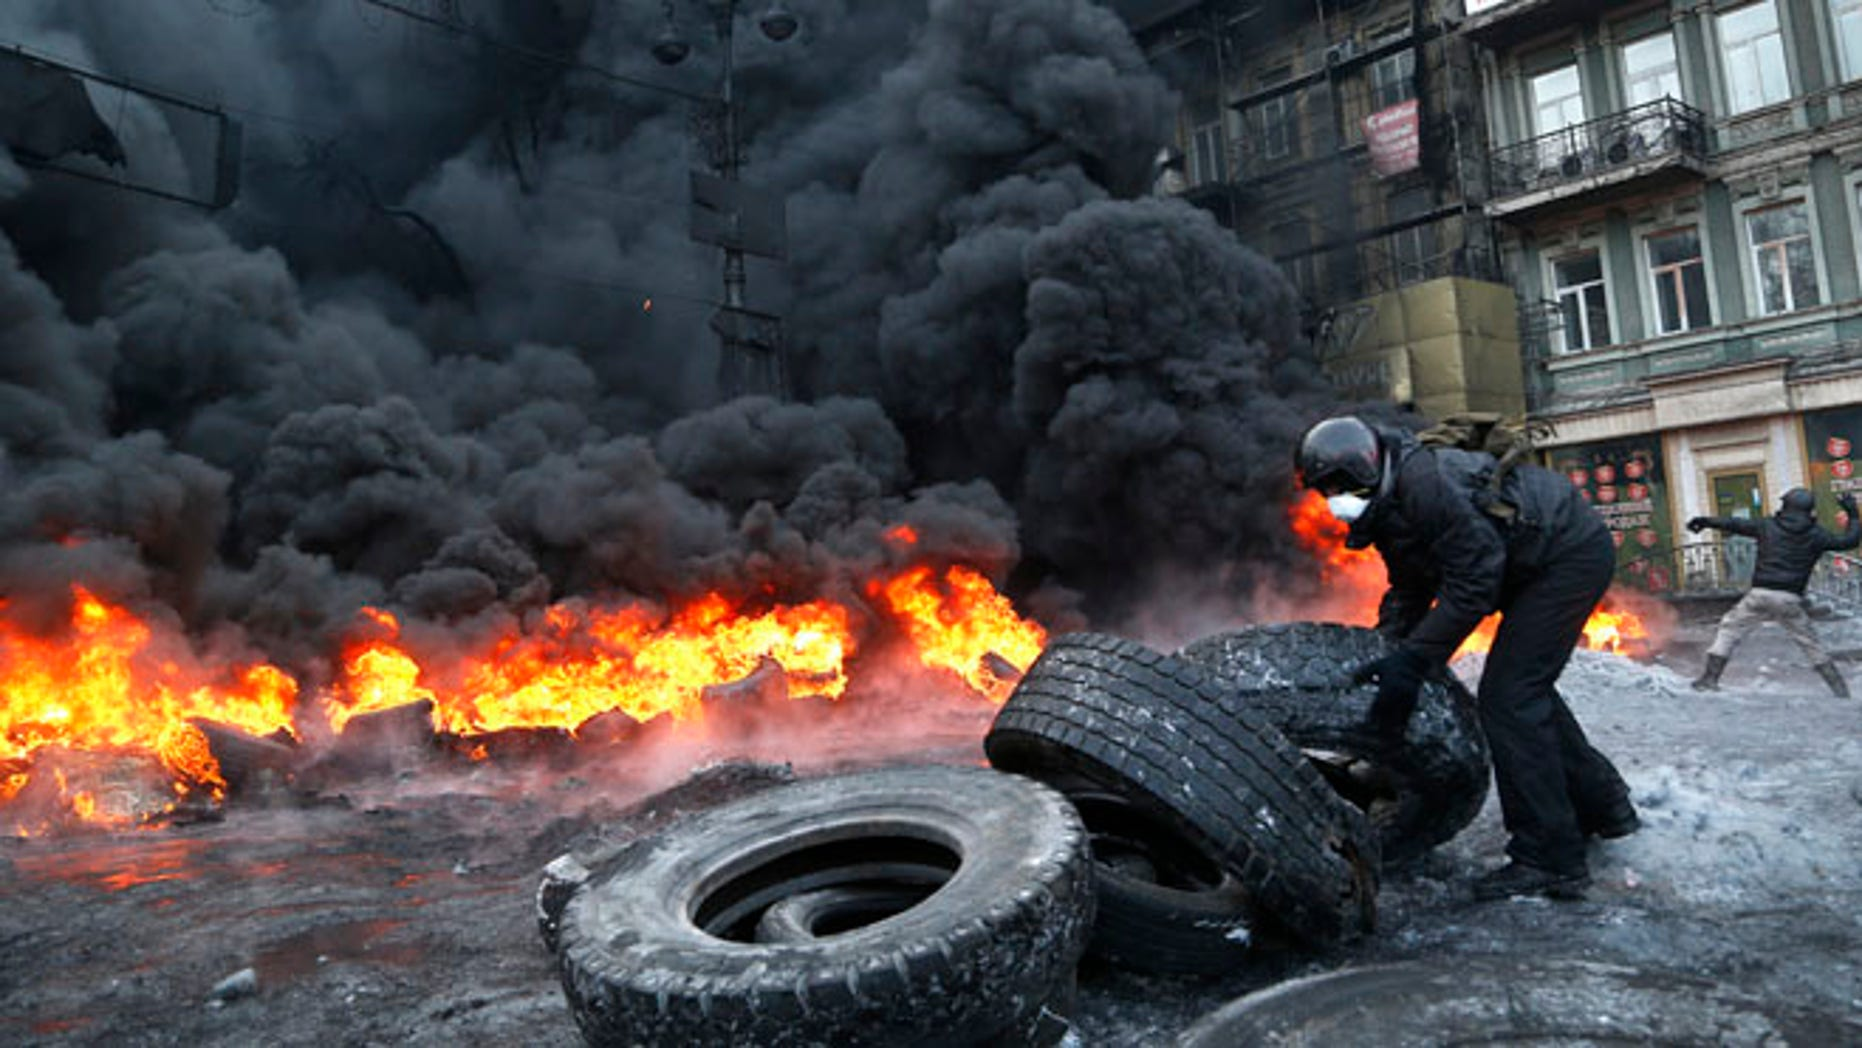 Jan. 25, 2014: A protester prepares to throw a tire onto a fire during clashes with police in central Kiev, Ukraine, early Saturday.